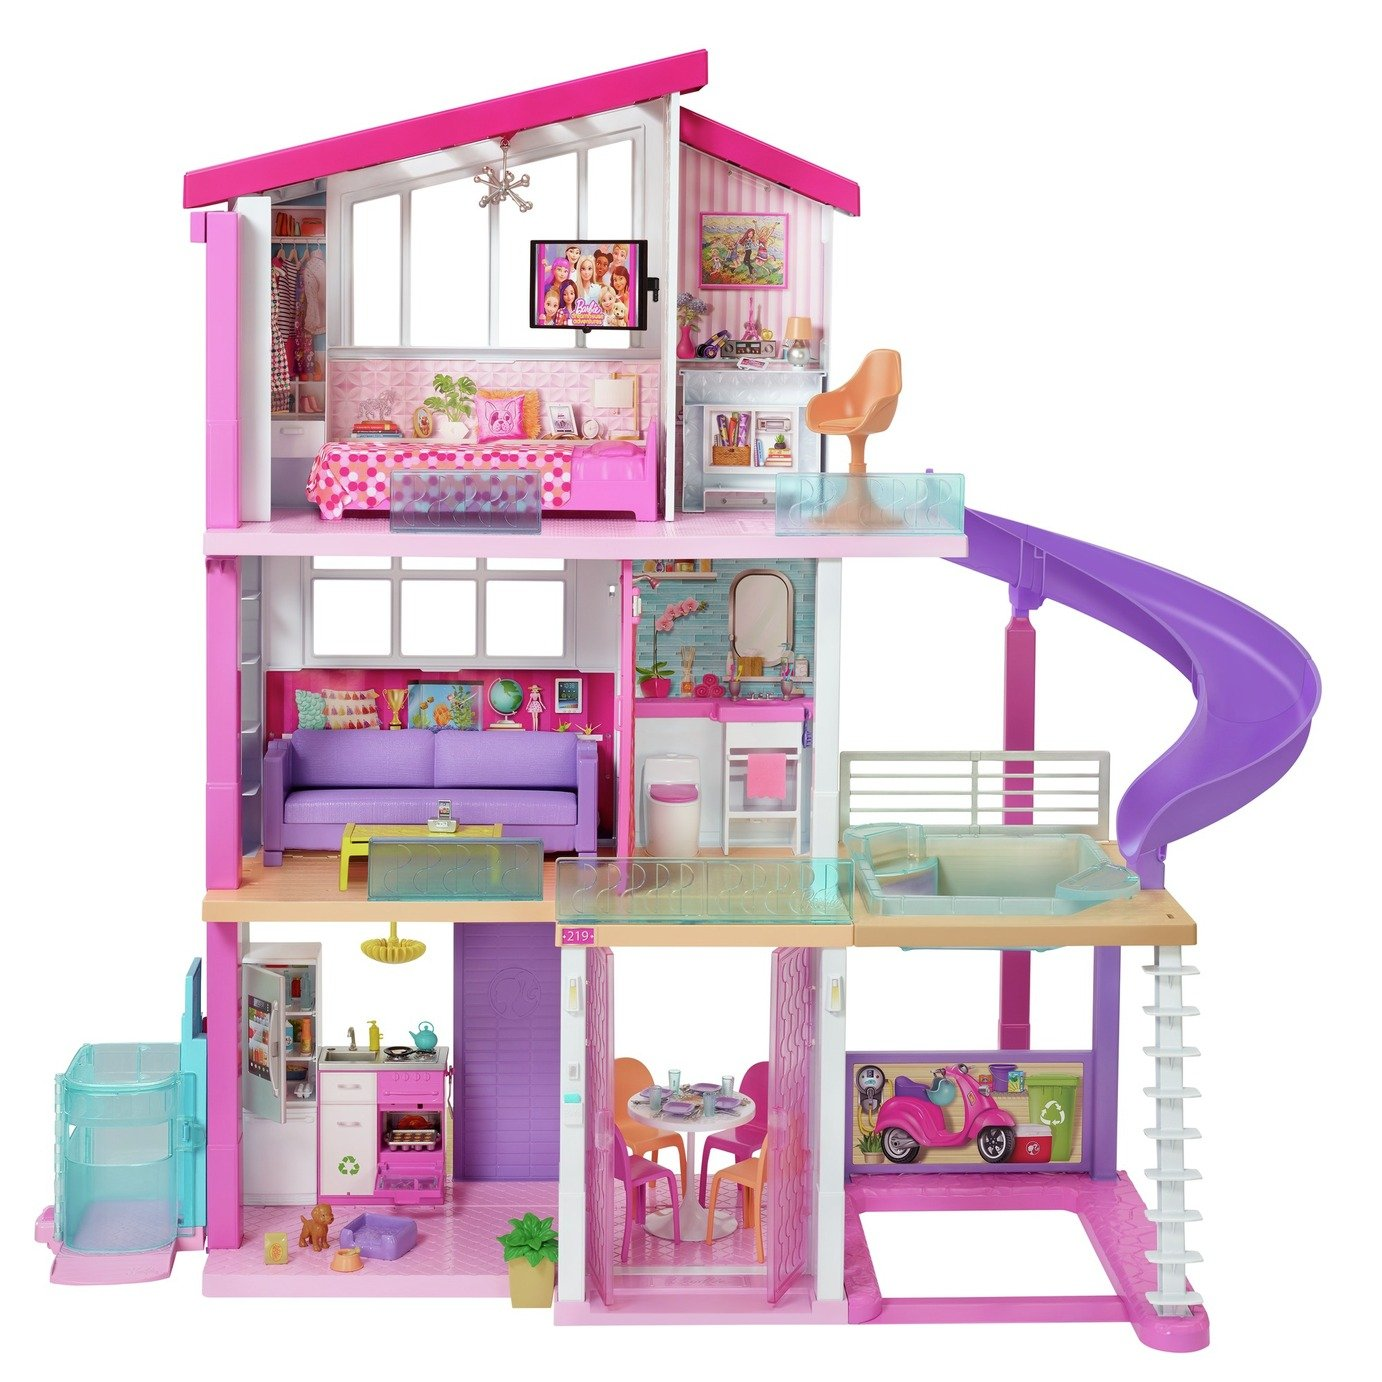 Barbie Dreamhouse Dollhouse with Pool, Slide and Elevator